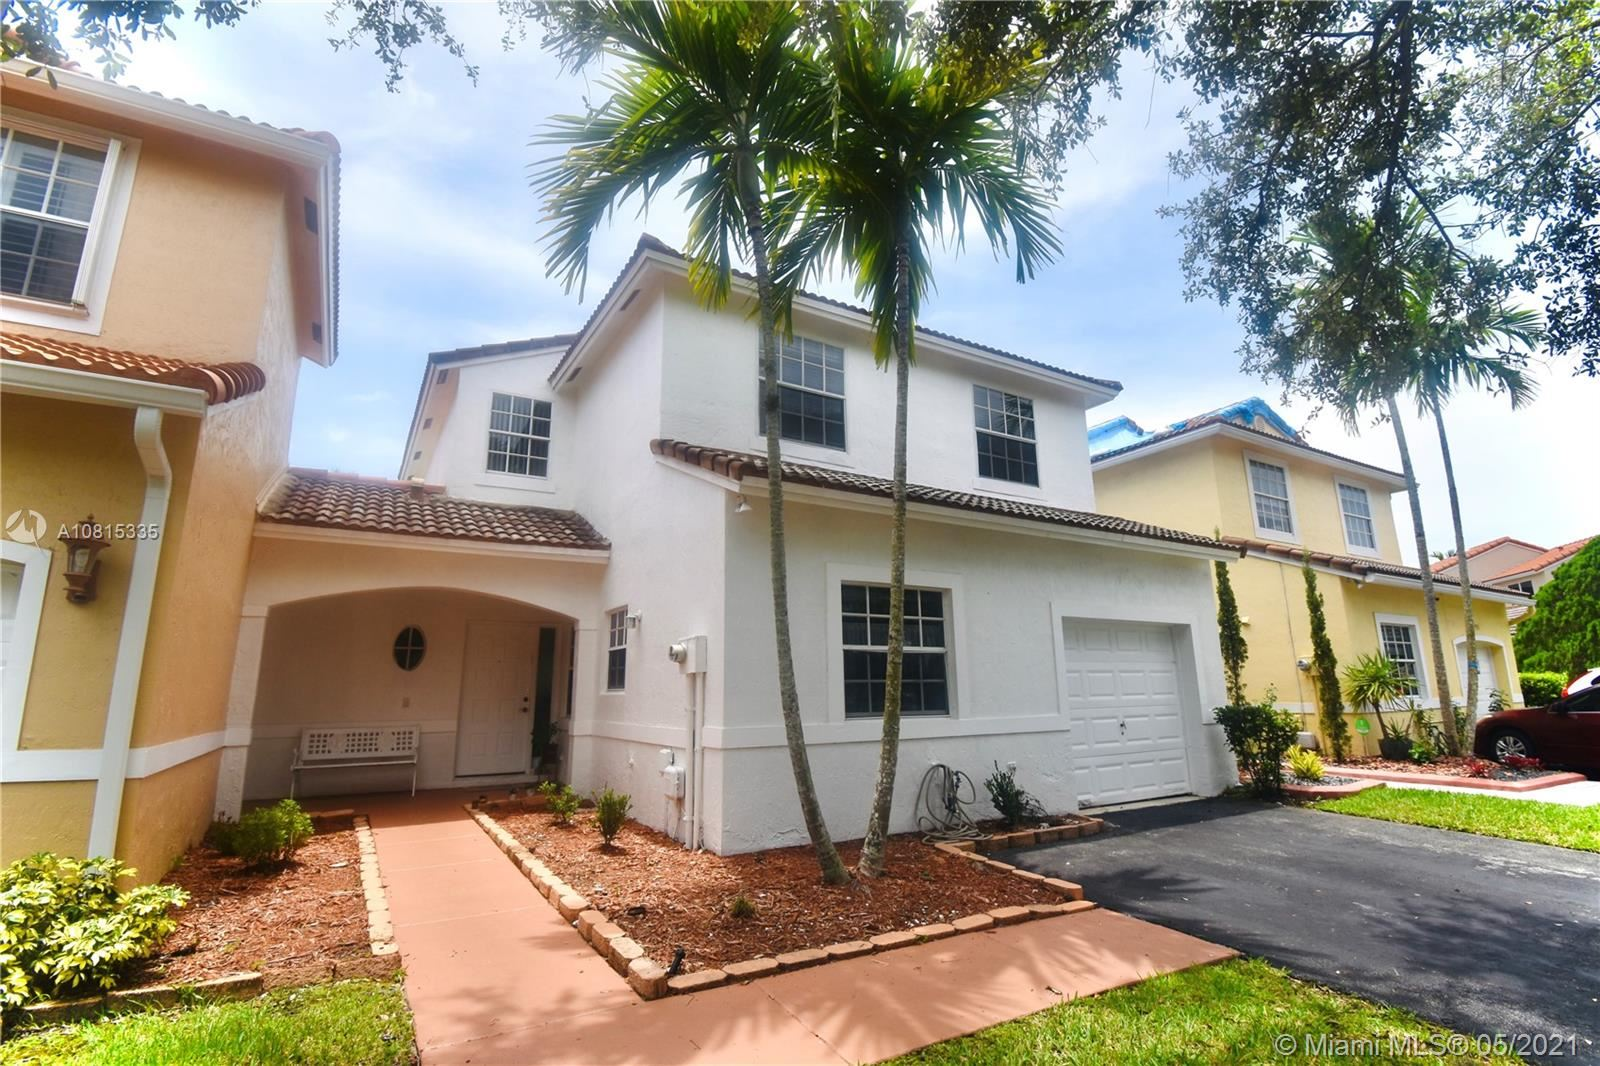 961 SW 178th Way, Pembroke Pines, FL 33029 - #: A10815335